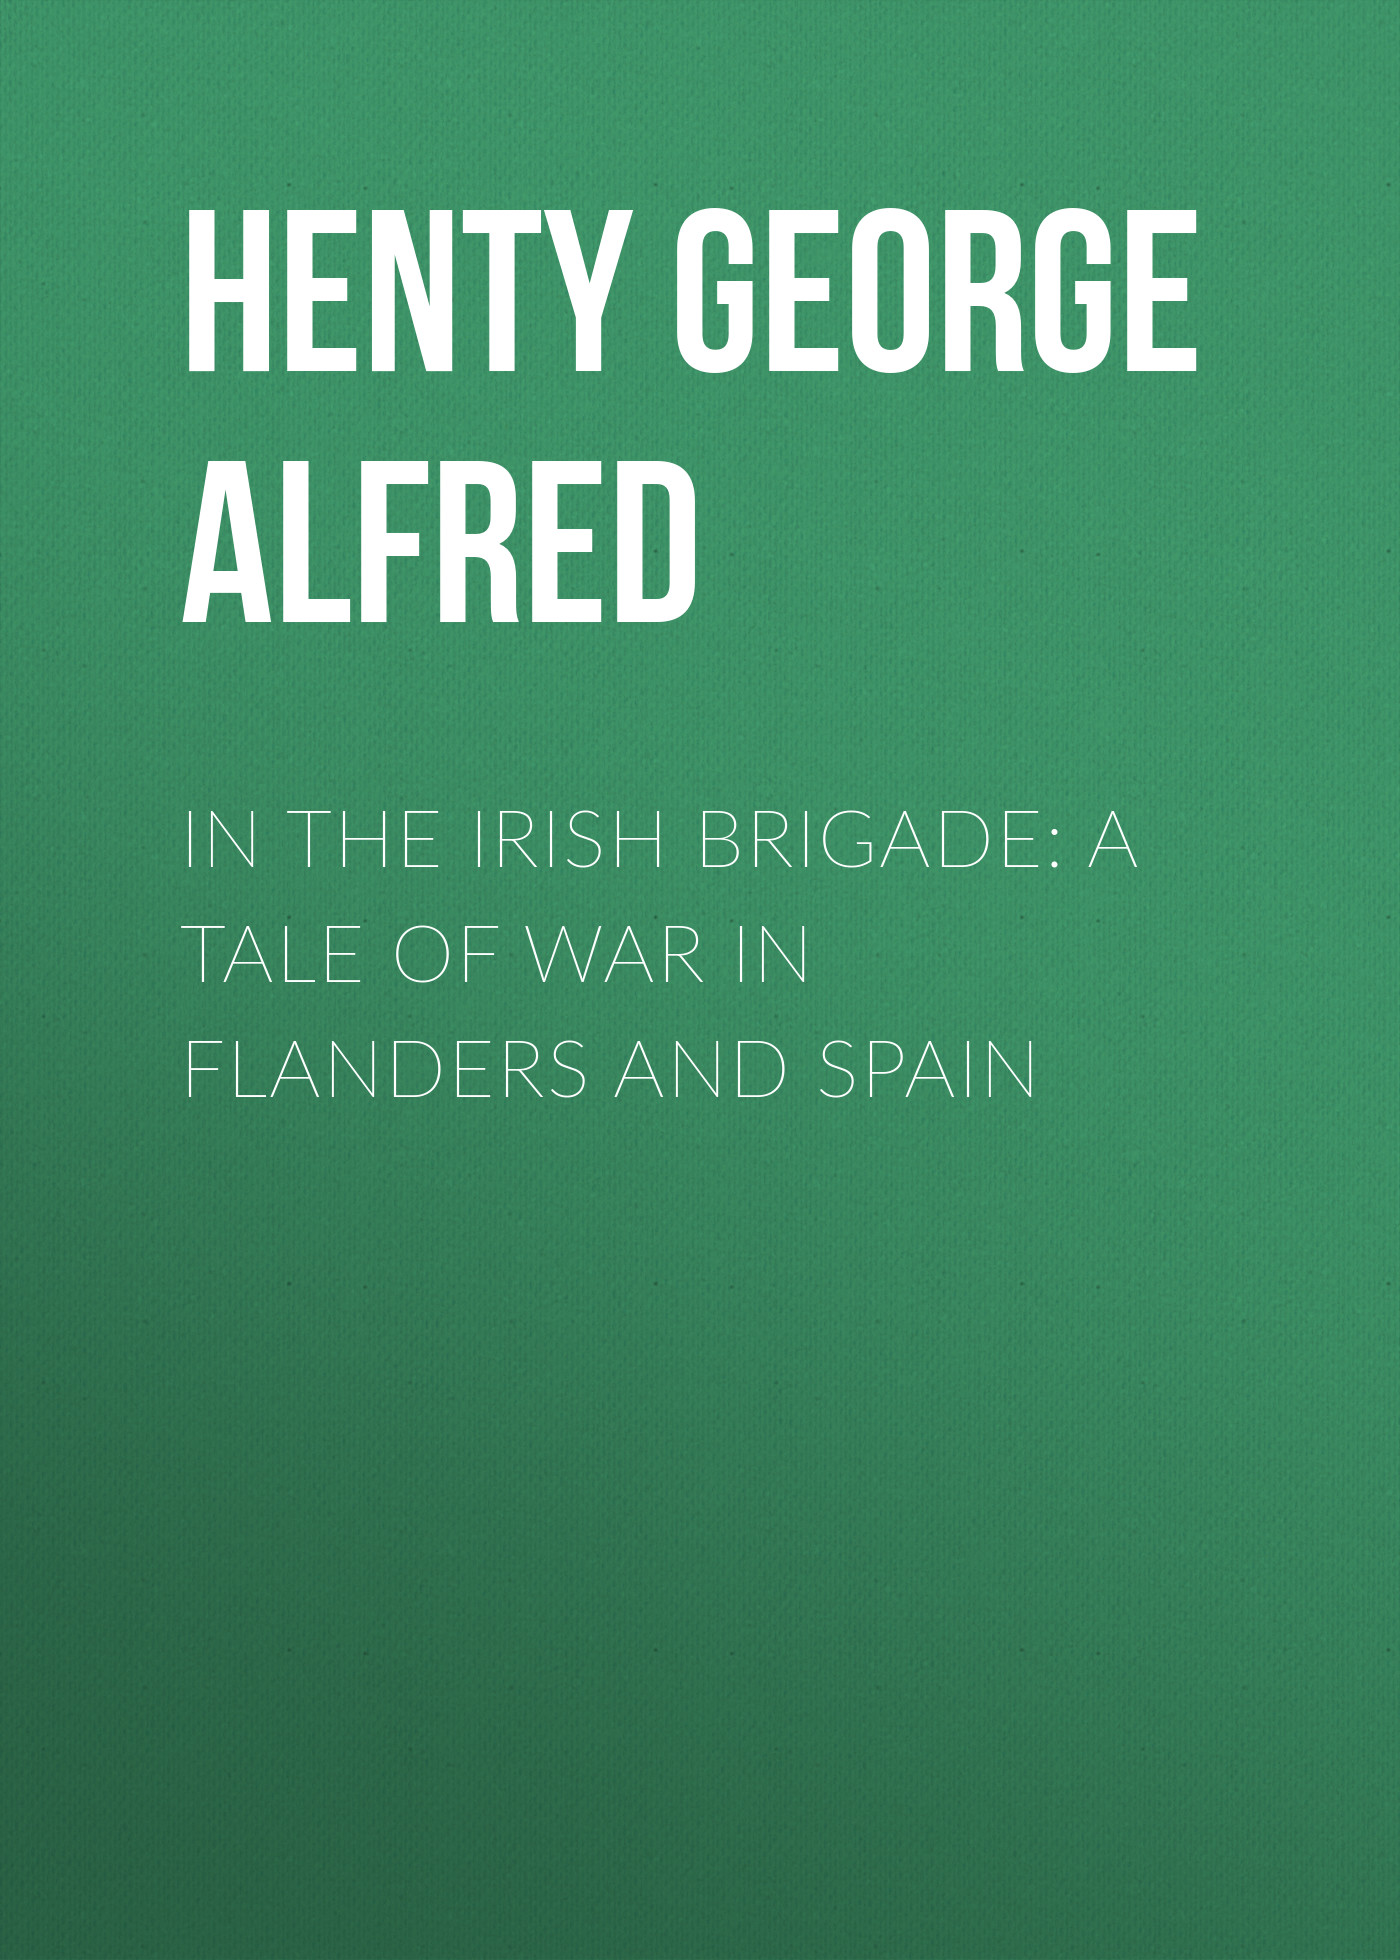 Henty George Alfred In the Irish Brigade: A Tale of War in Flanders and Spain rebecca flanders wolf in waiting